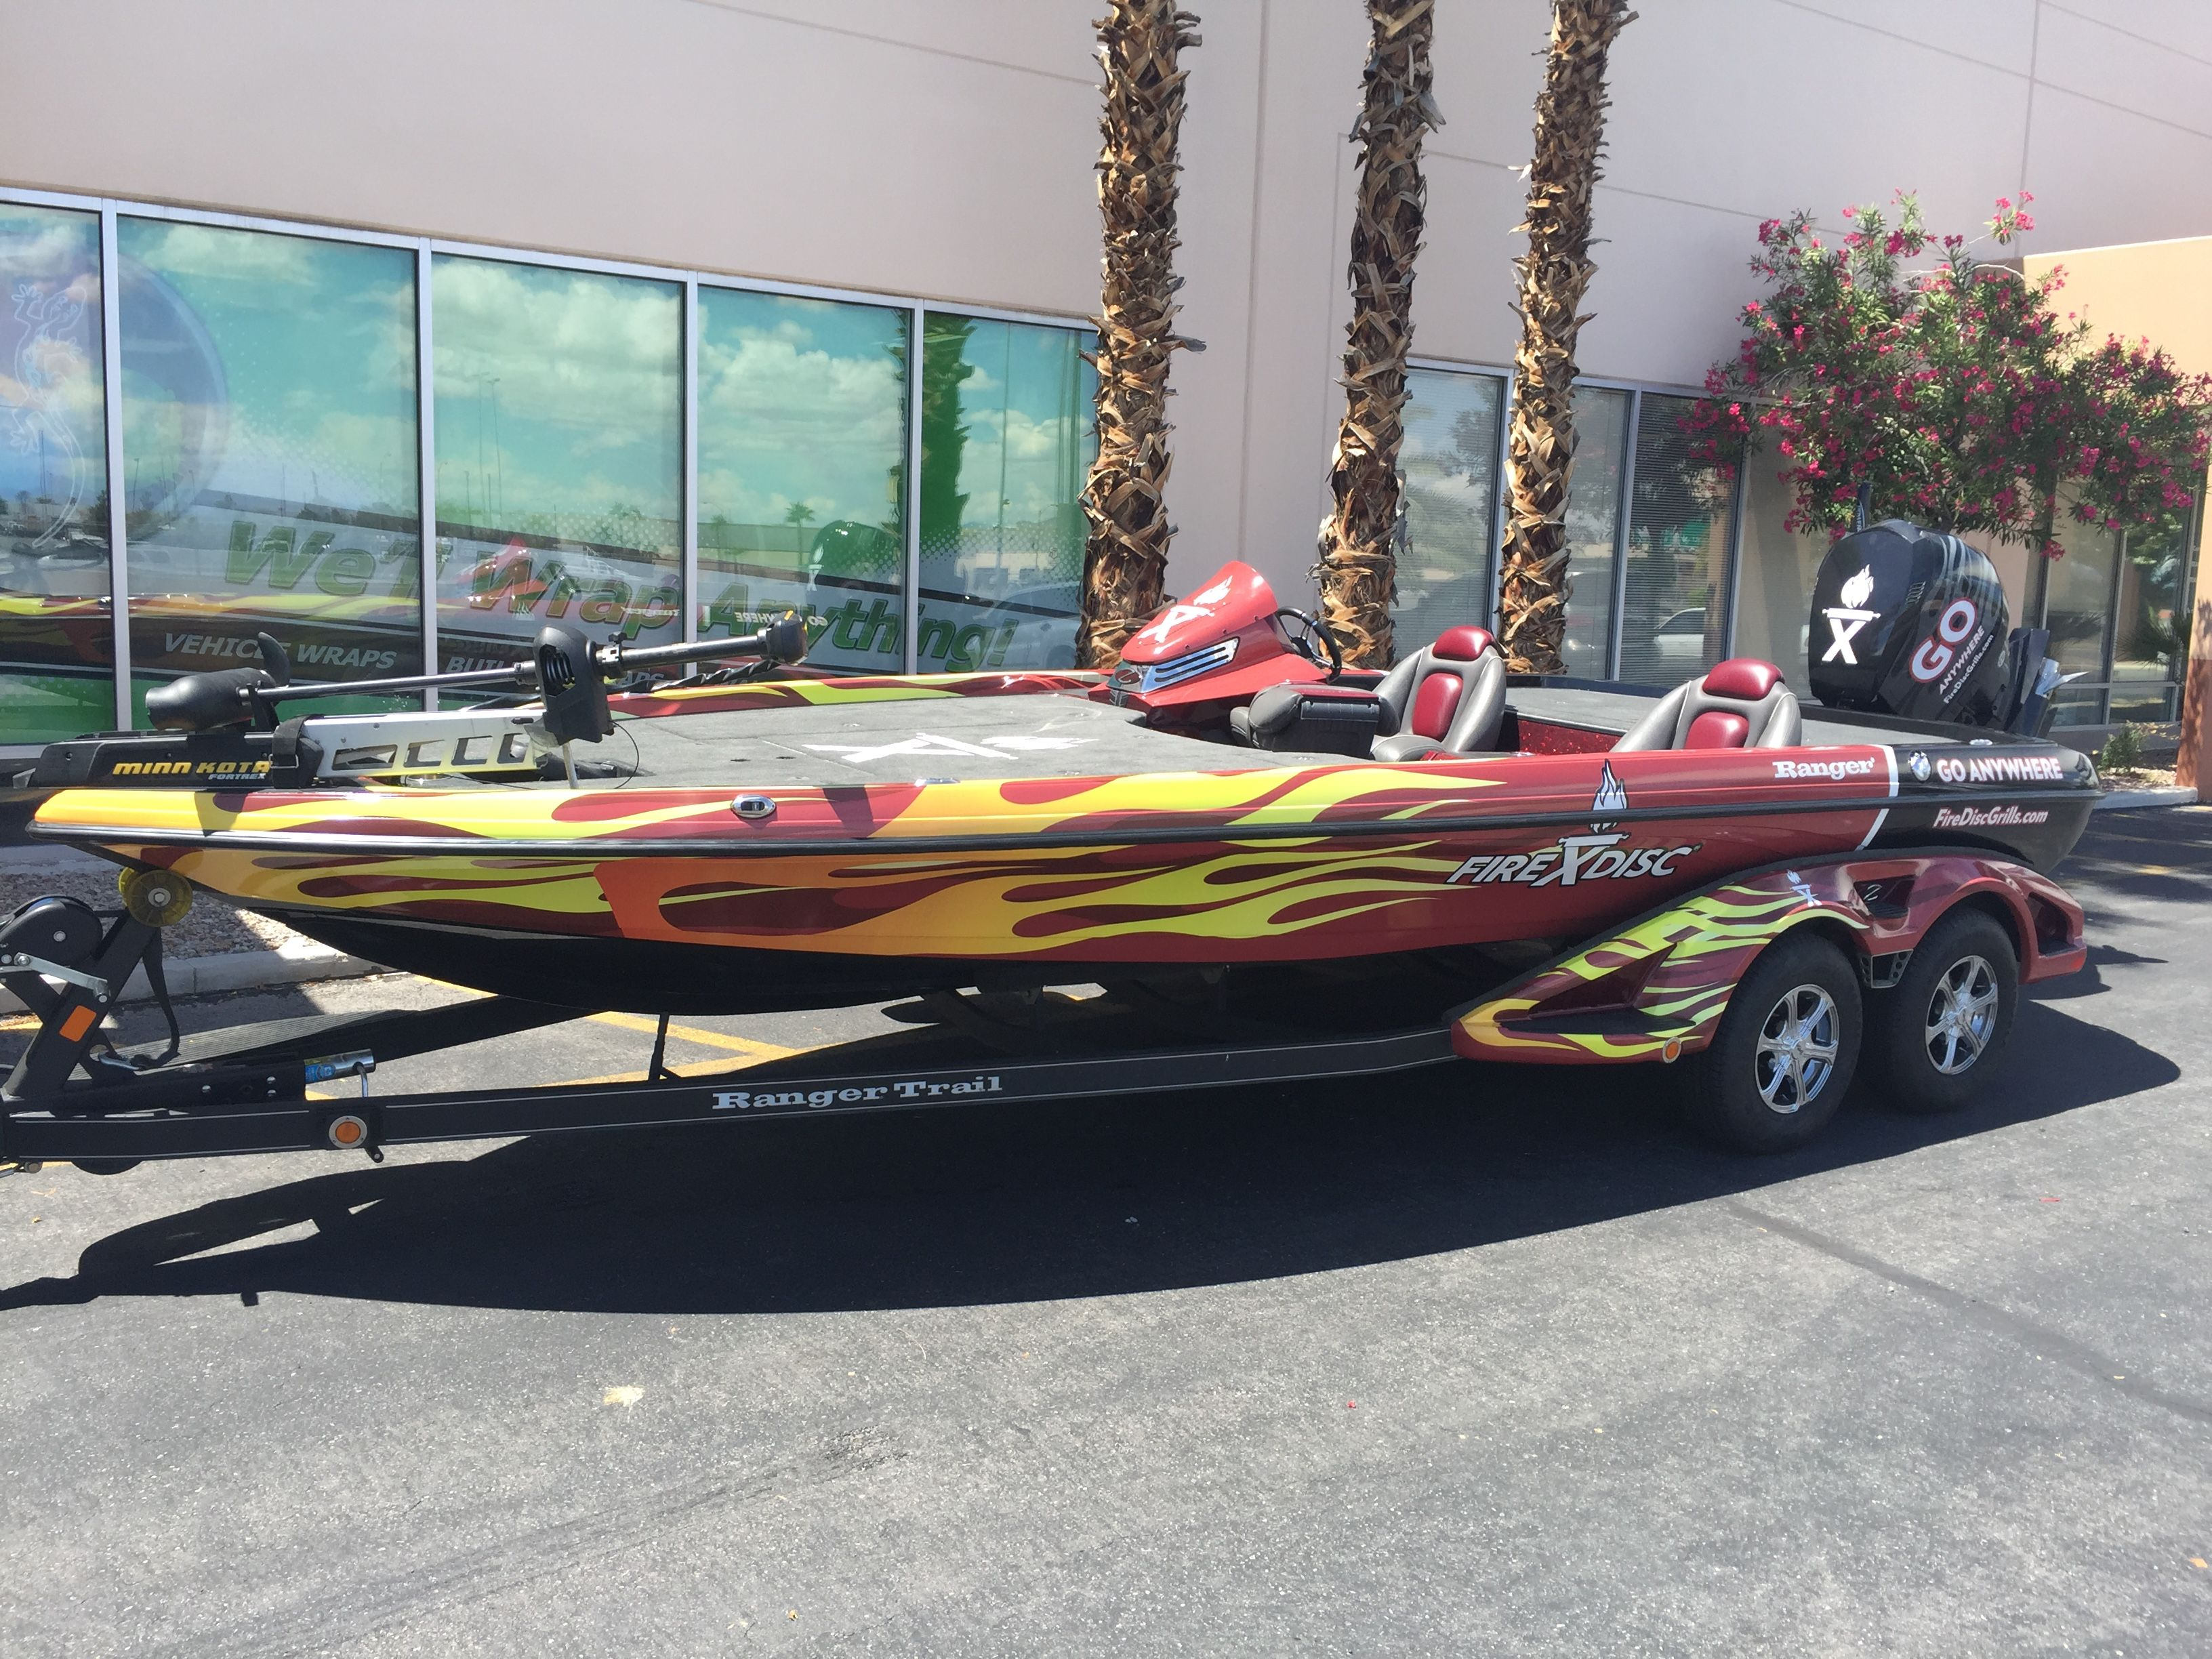 This Ranger Z521c Bass Boat  Boat Graphics Las Vegas  This